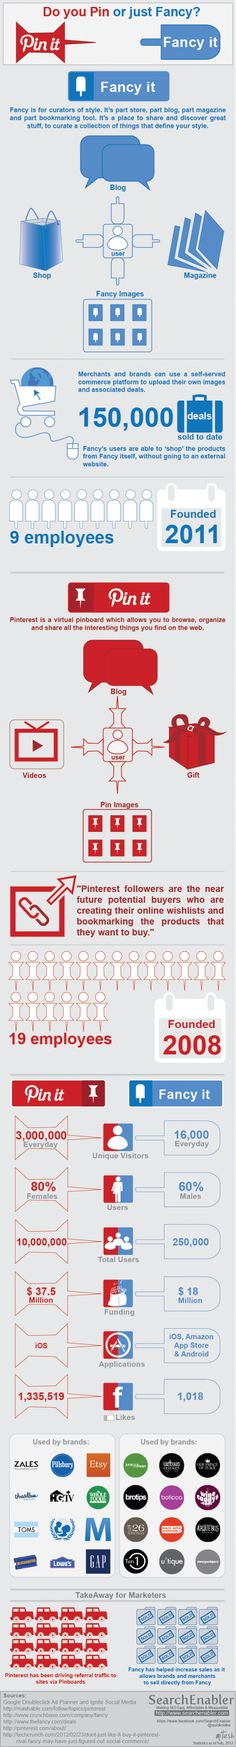 Pinterest vs. The Fancy infographic